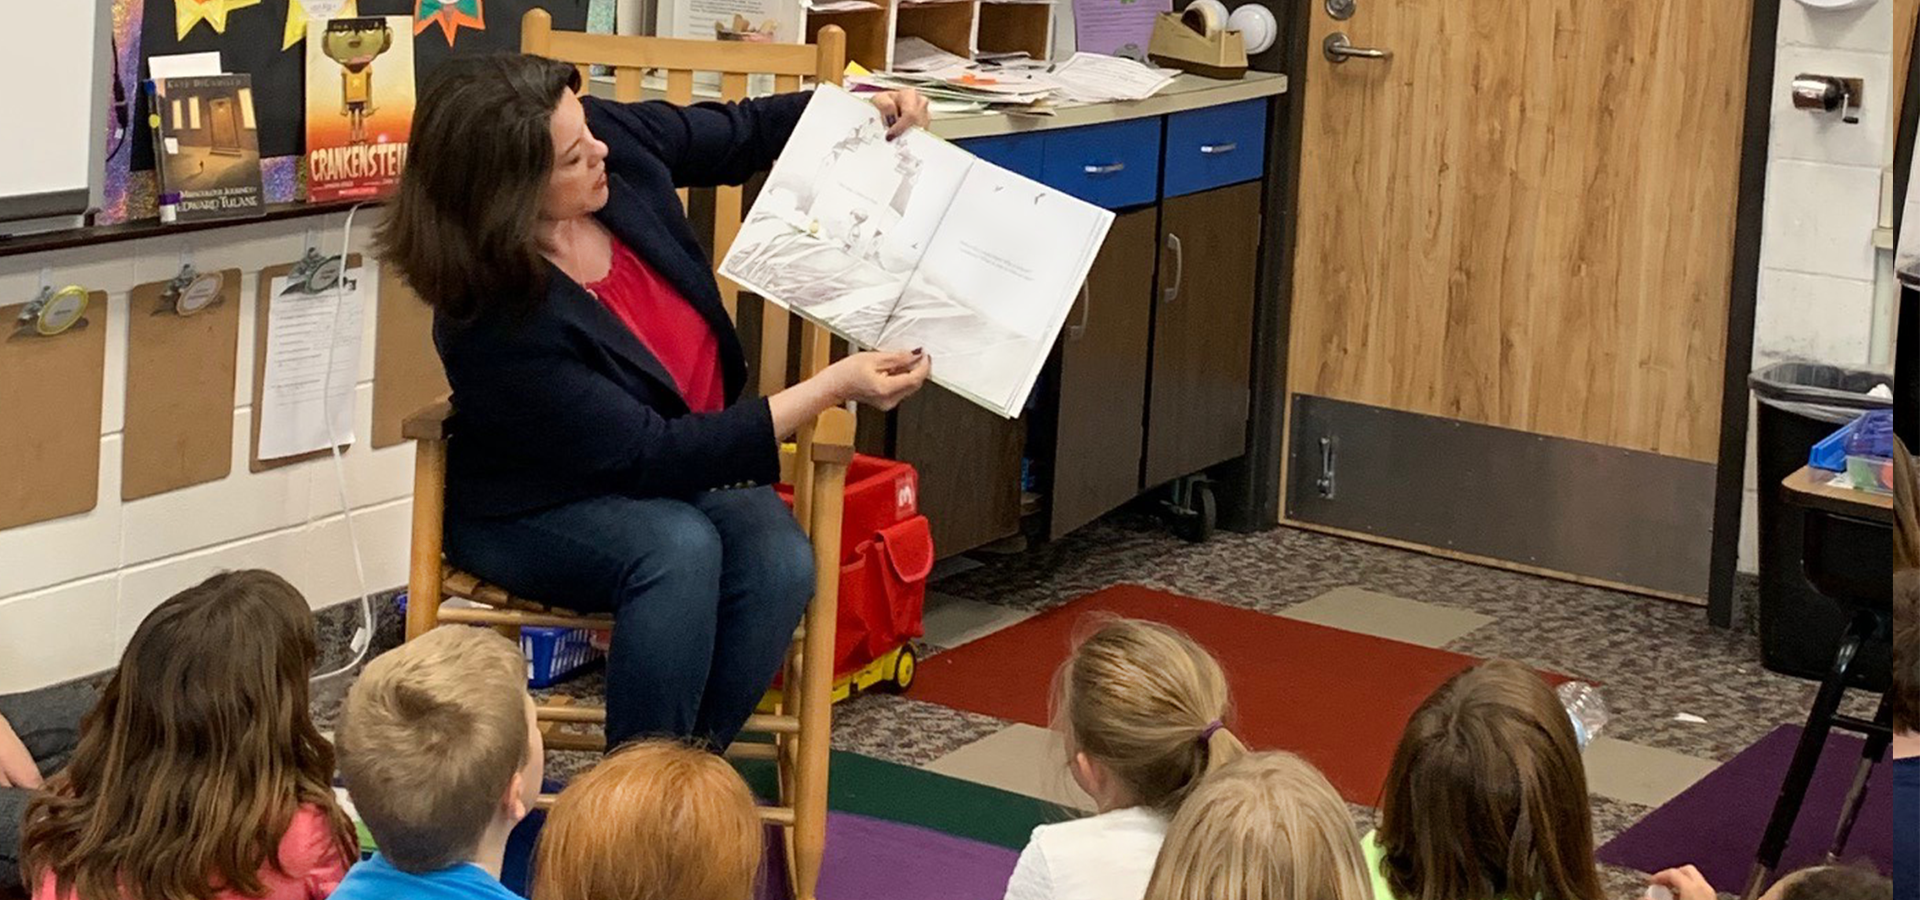 Rep. Craig reading a story to children